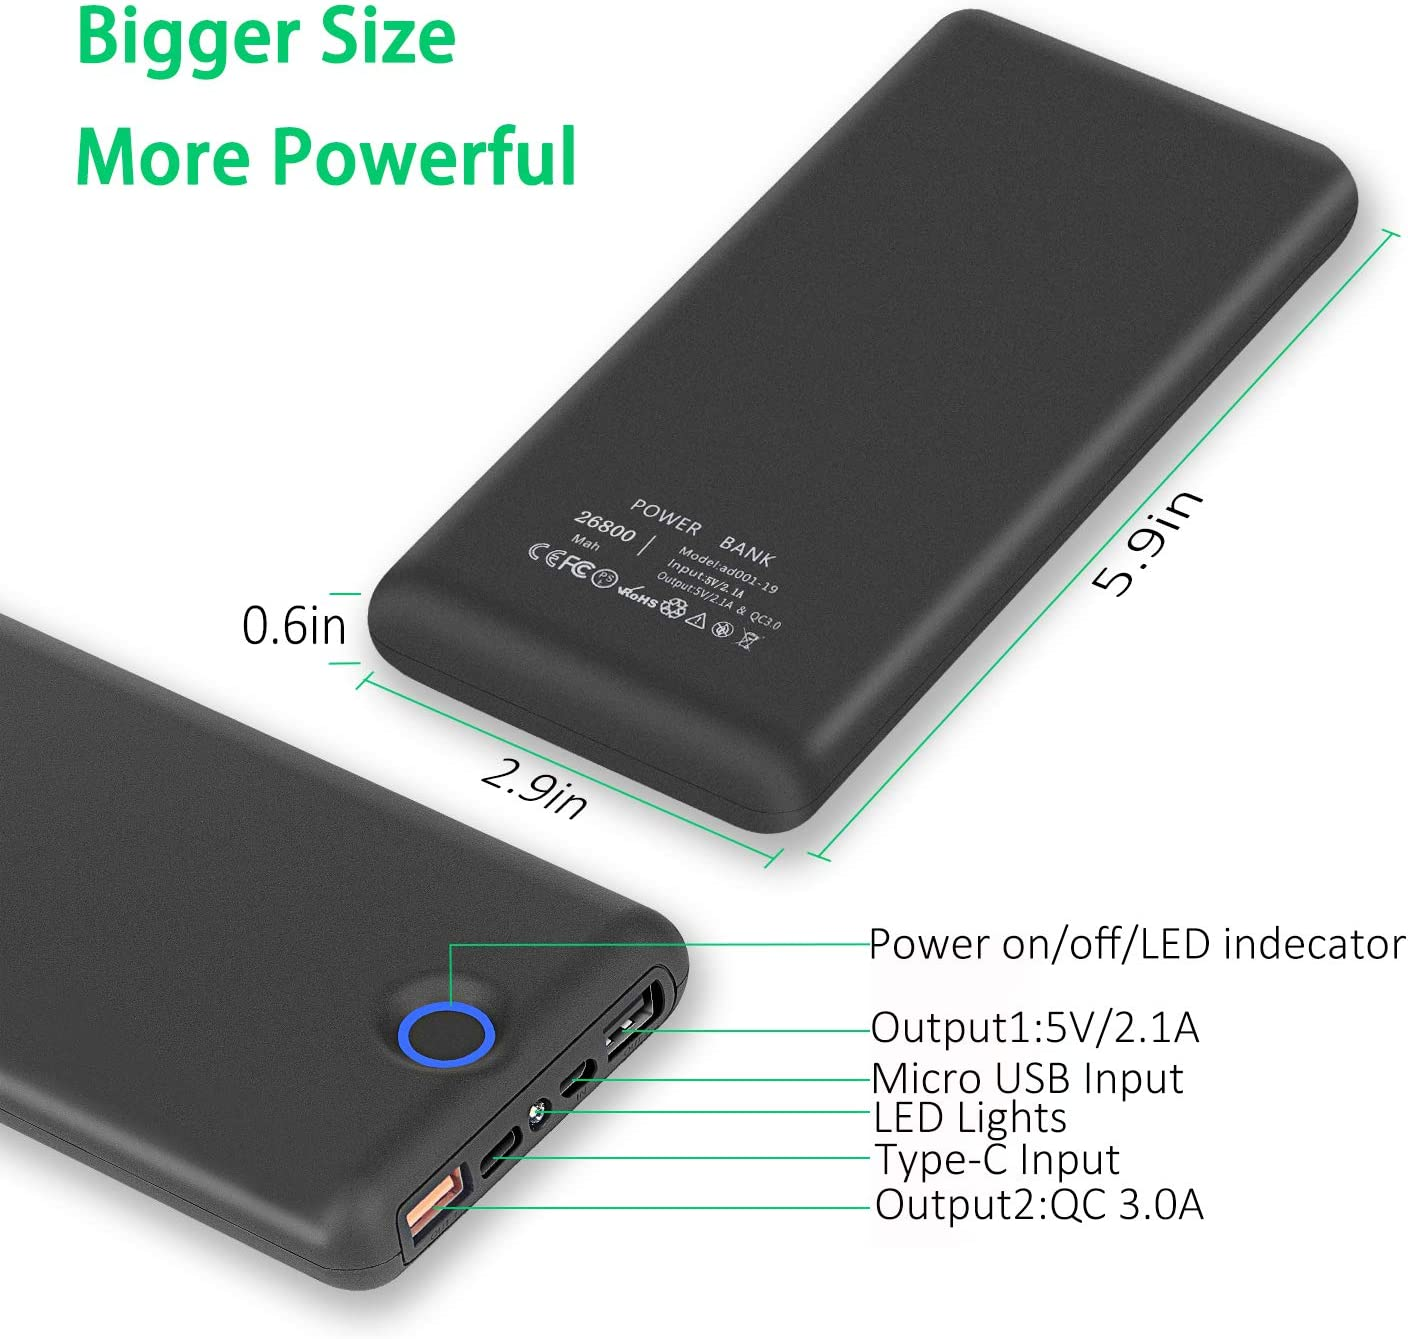 KIVTEET Power Bank 26800mAh Portable Charger High Capacity External Battery Pack with Ring Power Display Ultra Compact Quick Charge Power Banks for Moible Phones Tablet and More